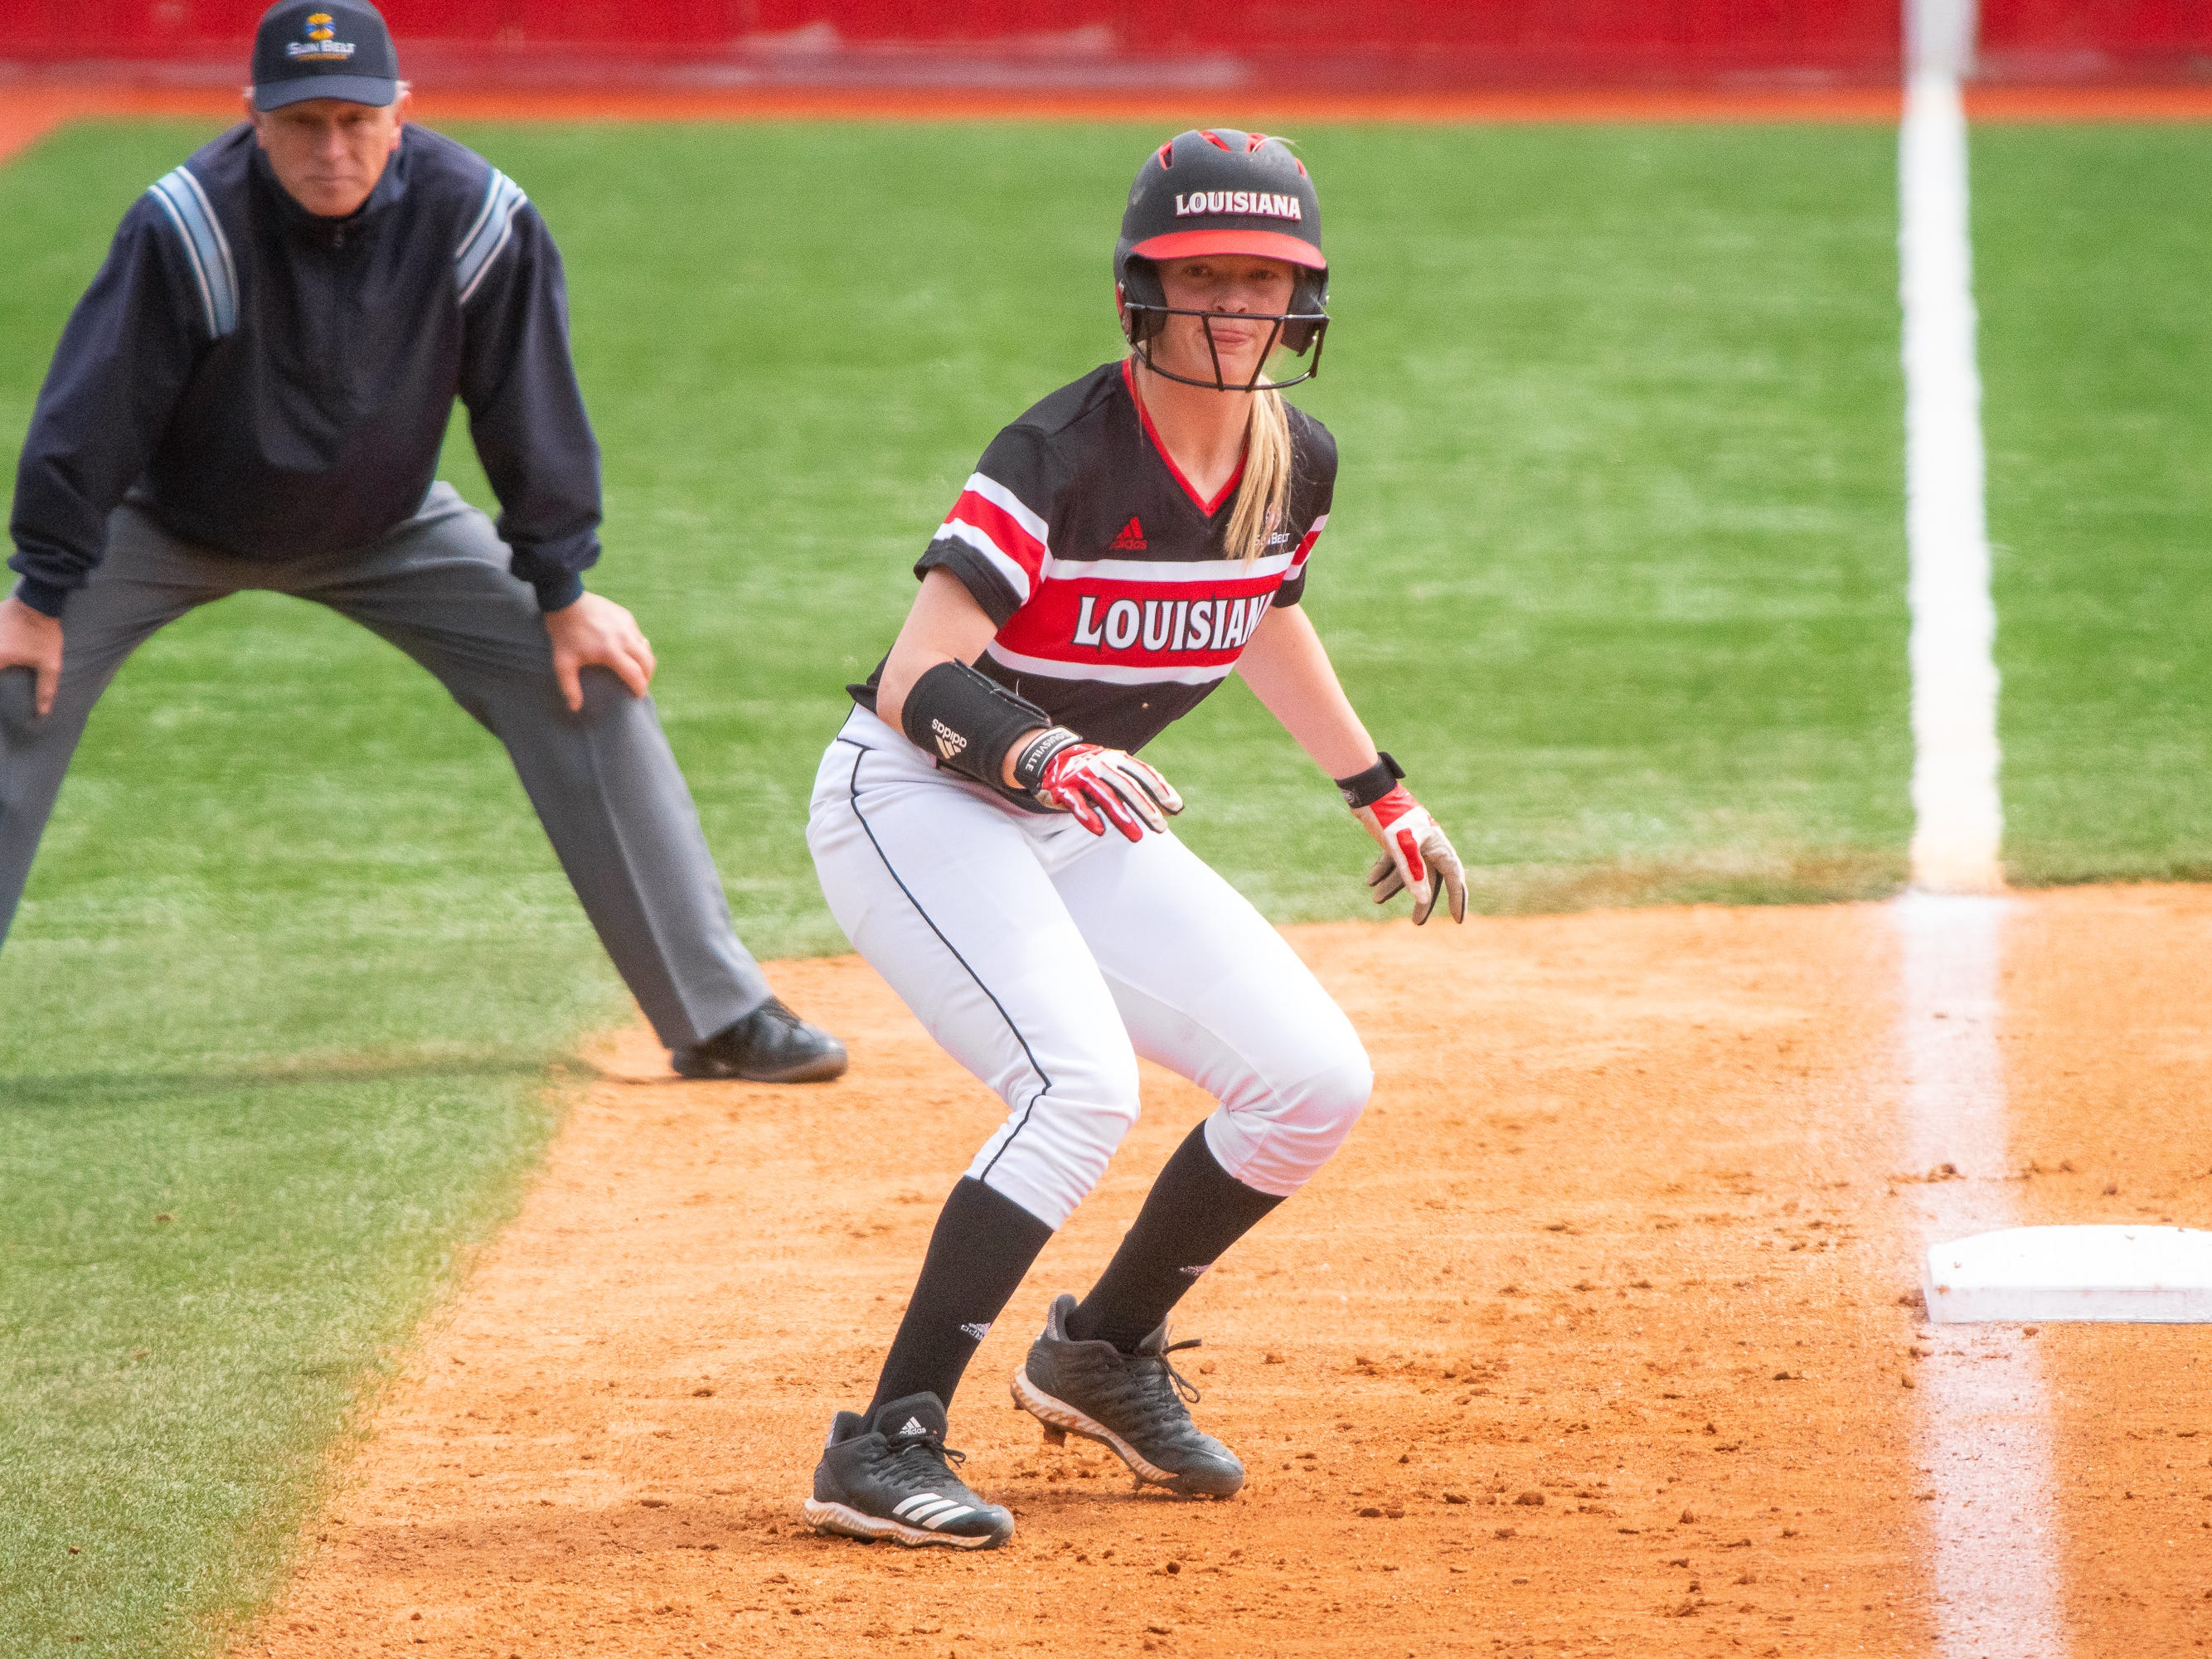 UL's Julie Rawls prepares to run to home plate as the Ragin' Cajuns take on the Troy Trojans at Yvette Girouard Field at Lamson Park on Saturday, March 16, 2019.